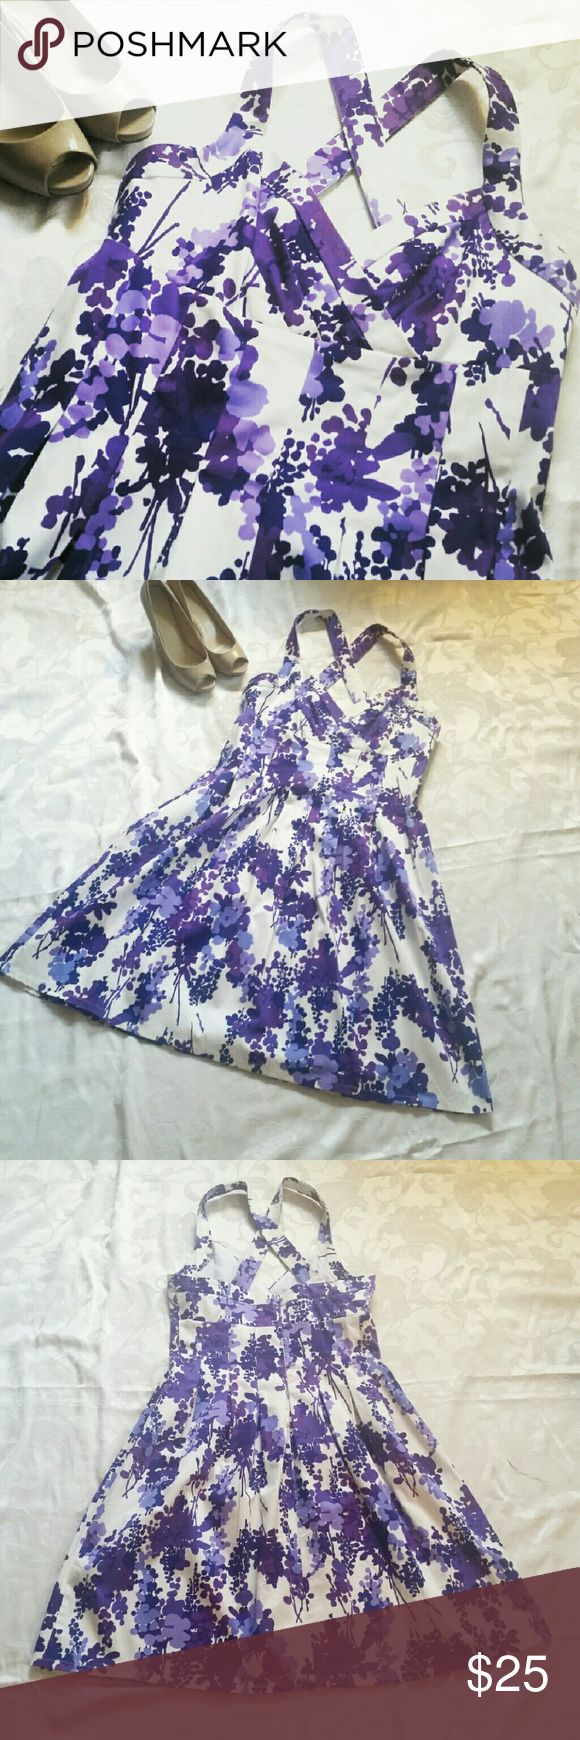 London Style Sundress Ready for tea with the queen? ??  Lavendar and purple print on white. Sweatheart neck and cross back straps. Darts in bodice and into skirt. Literally worn once. Like brand new.   Shoes not for sale. London Style  Dresses